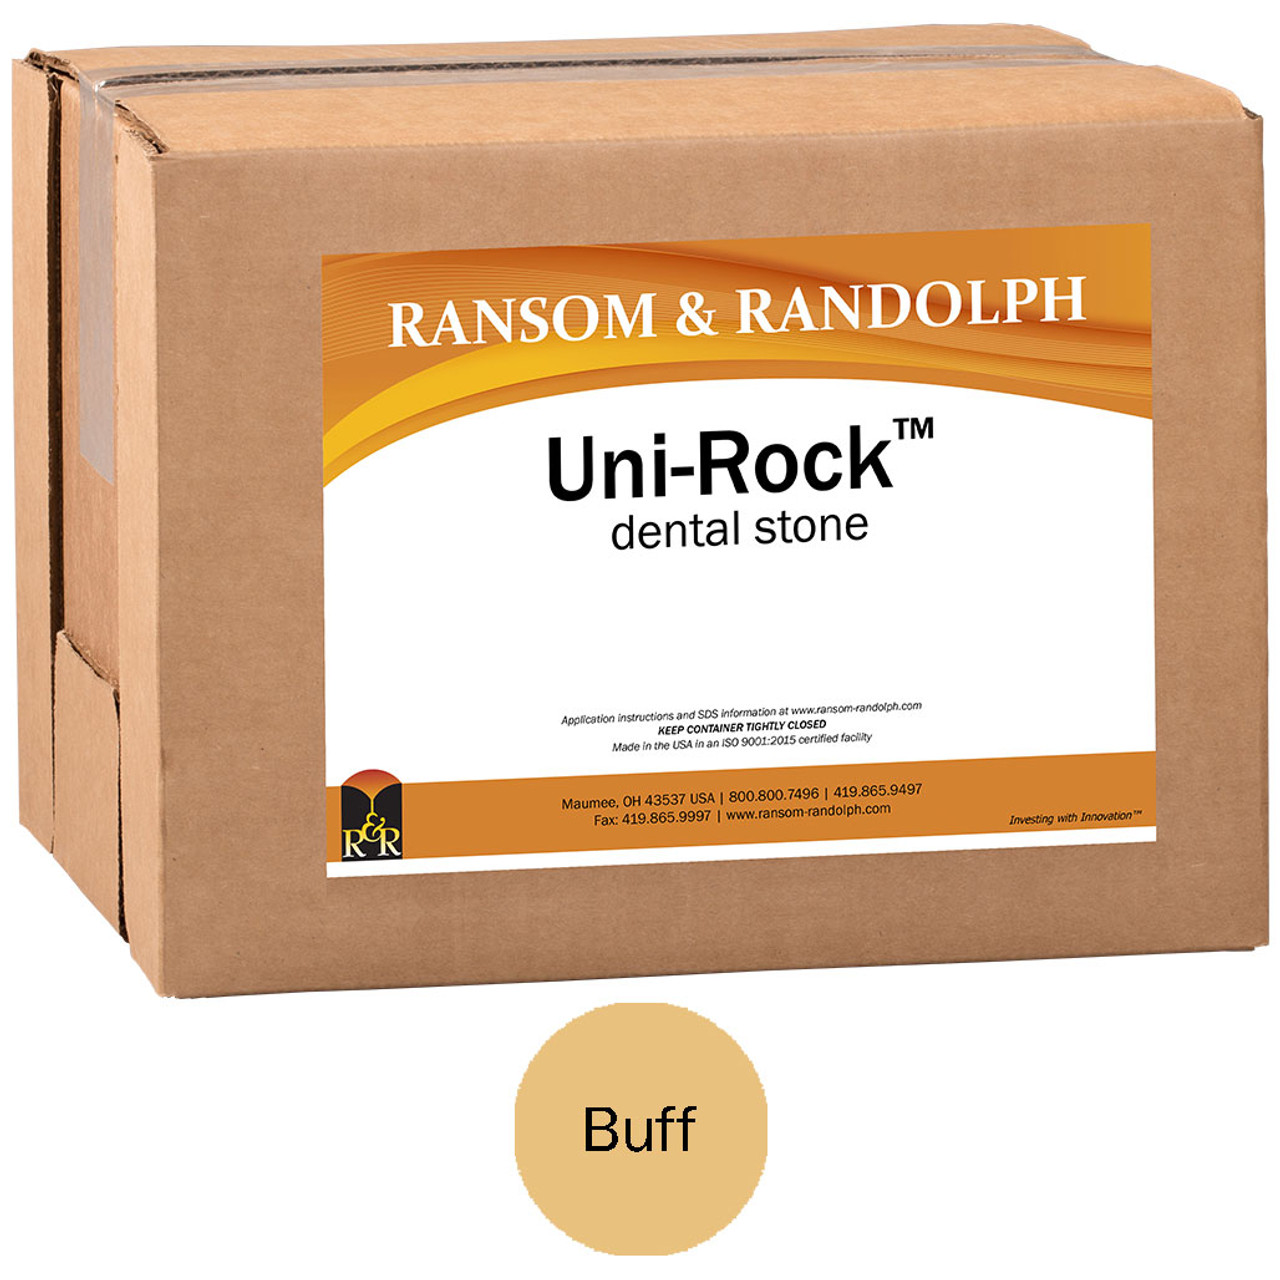 Uni-Rock™ dental stone - 50 lbs.